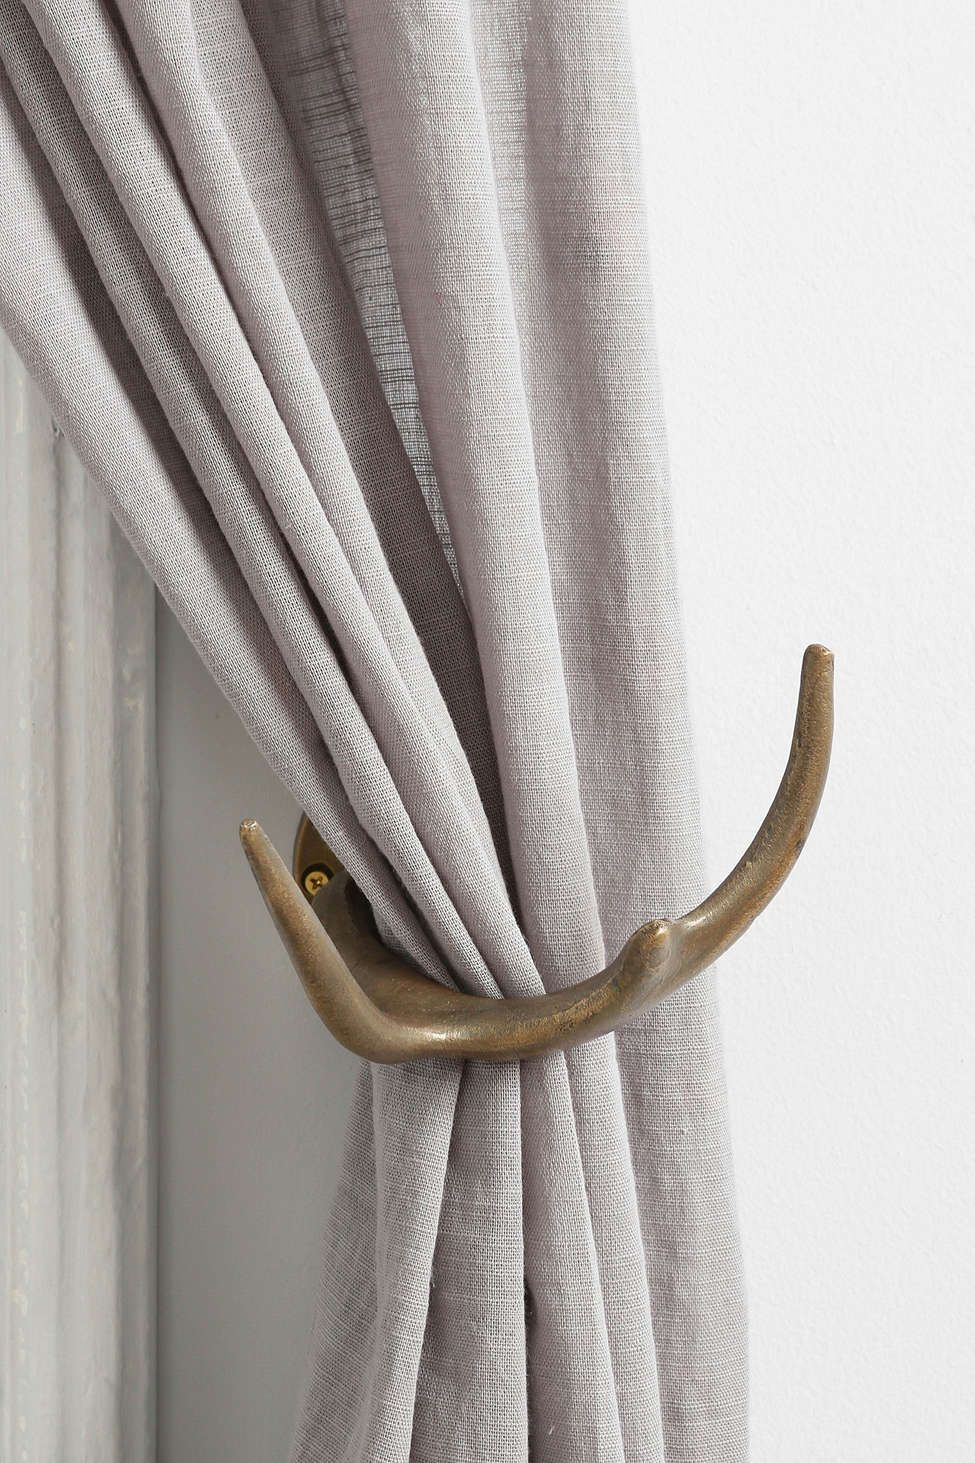 Magical Thinking Antler Curtain Tie Back Curtains Curtain Tie